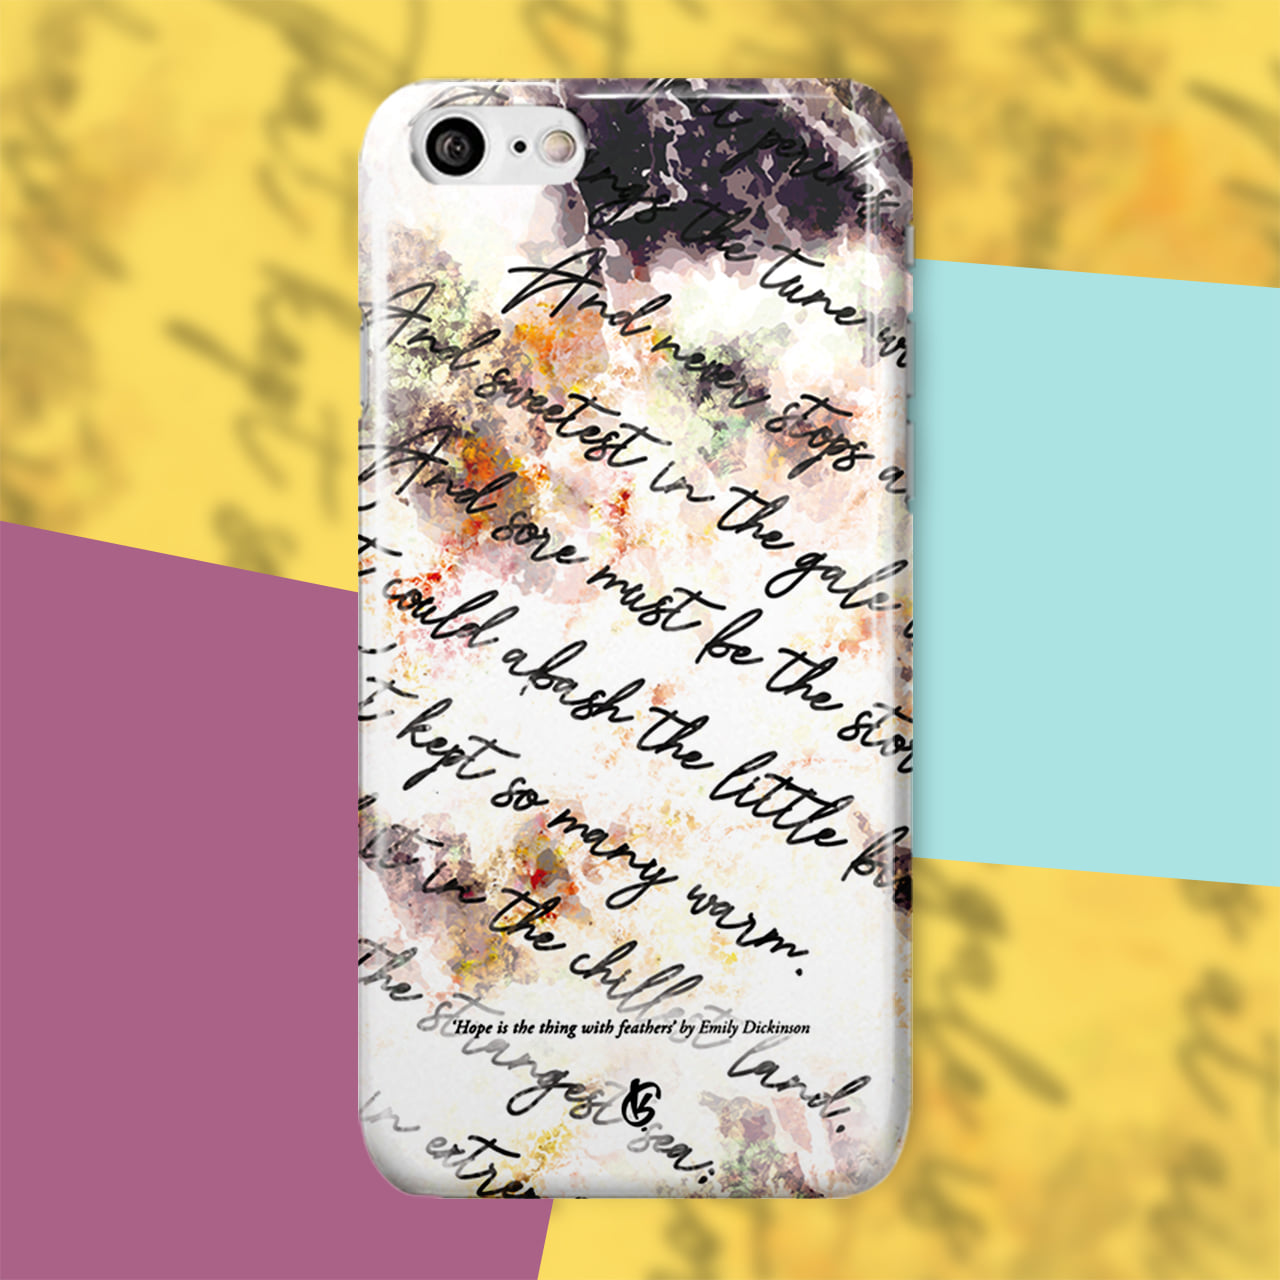 No.9 'Hope is the thing with feathers' by Emily Dickison (Letters Covered Ver.)